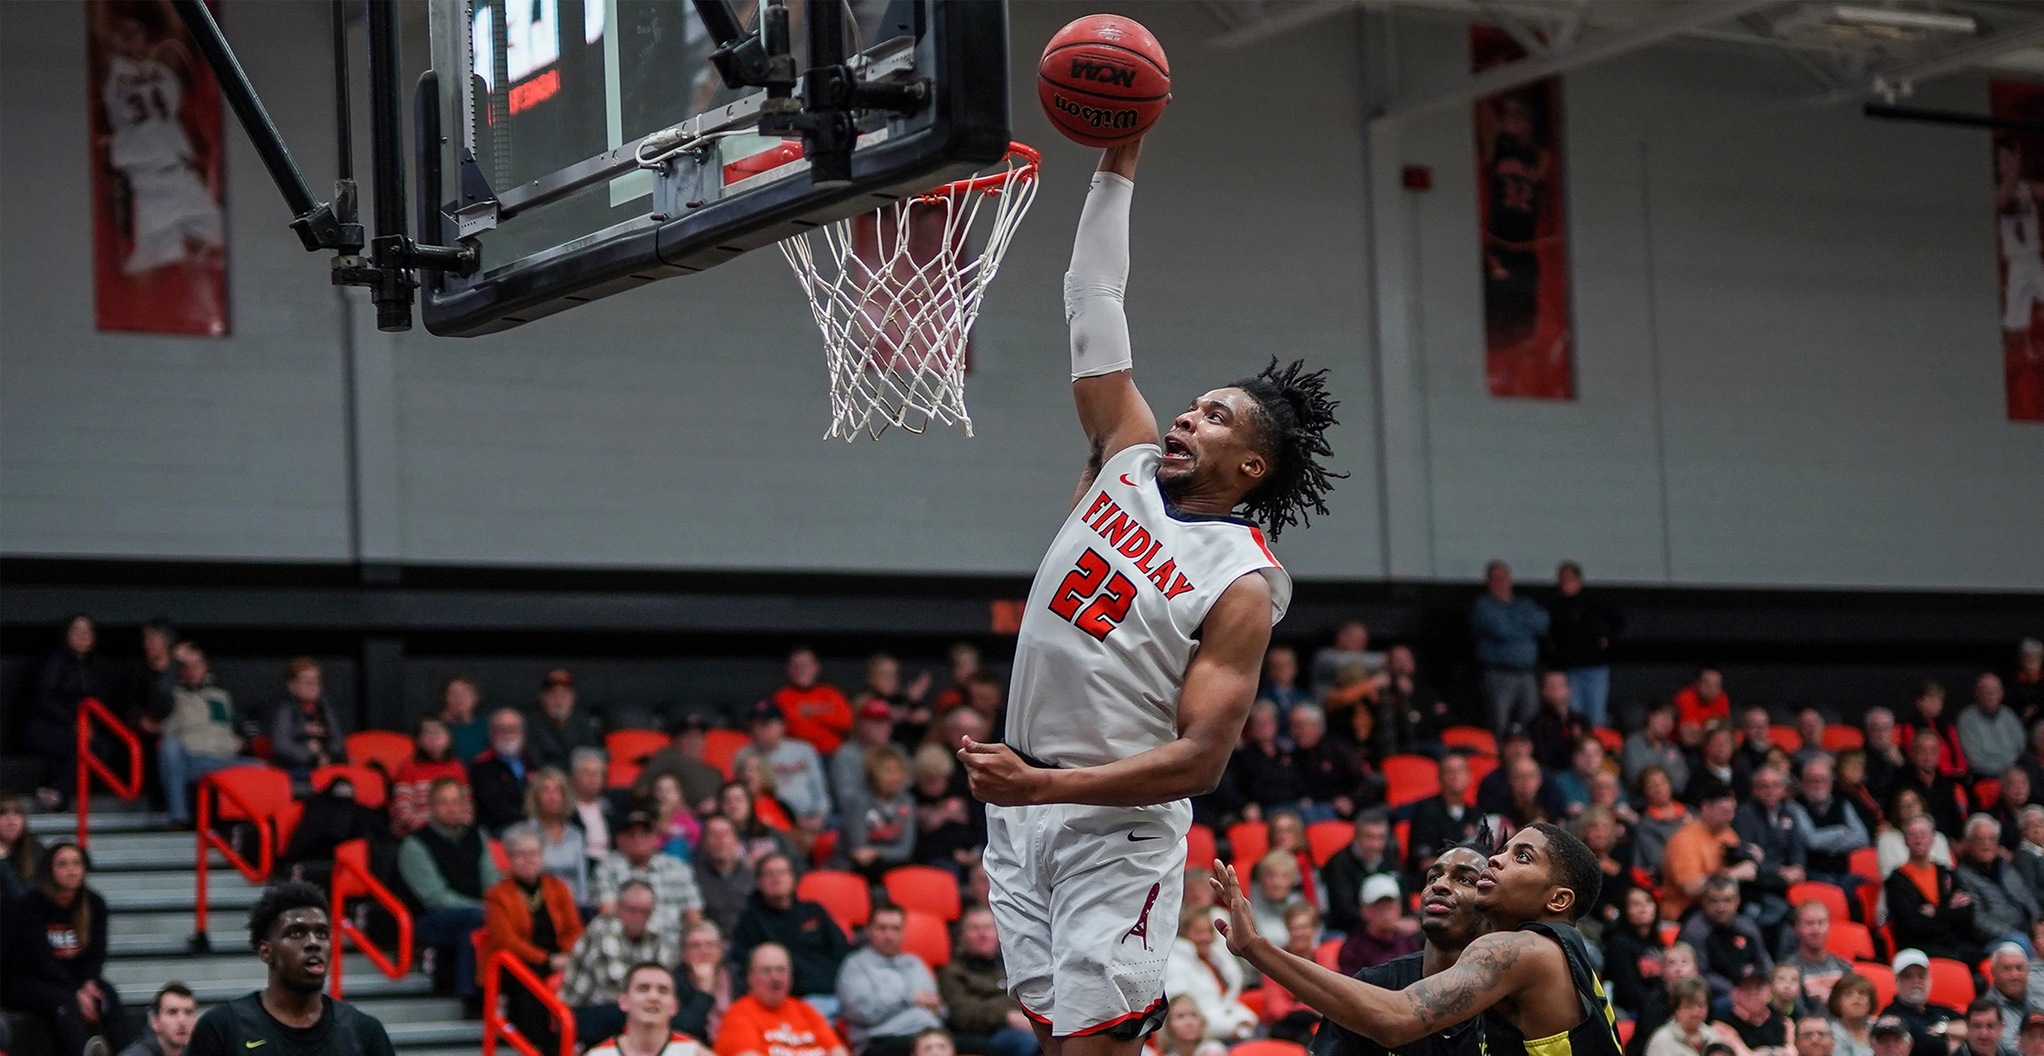 #8 Findlay Rolls to 106-66 Win